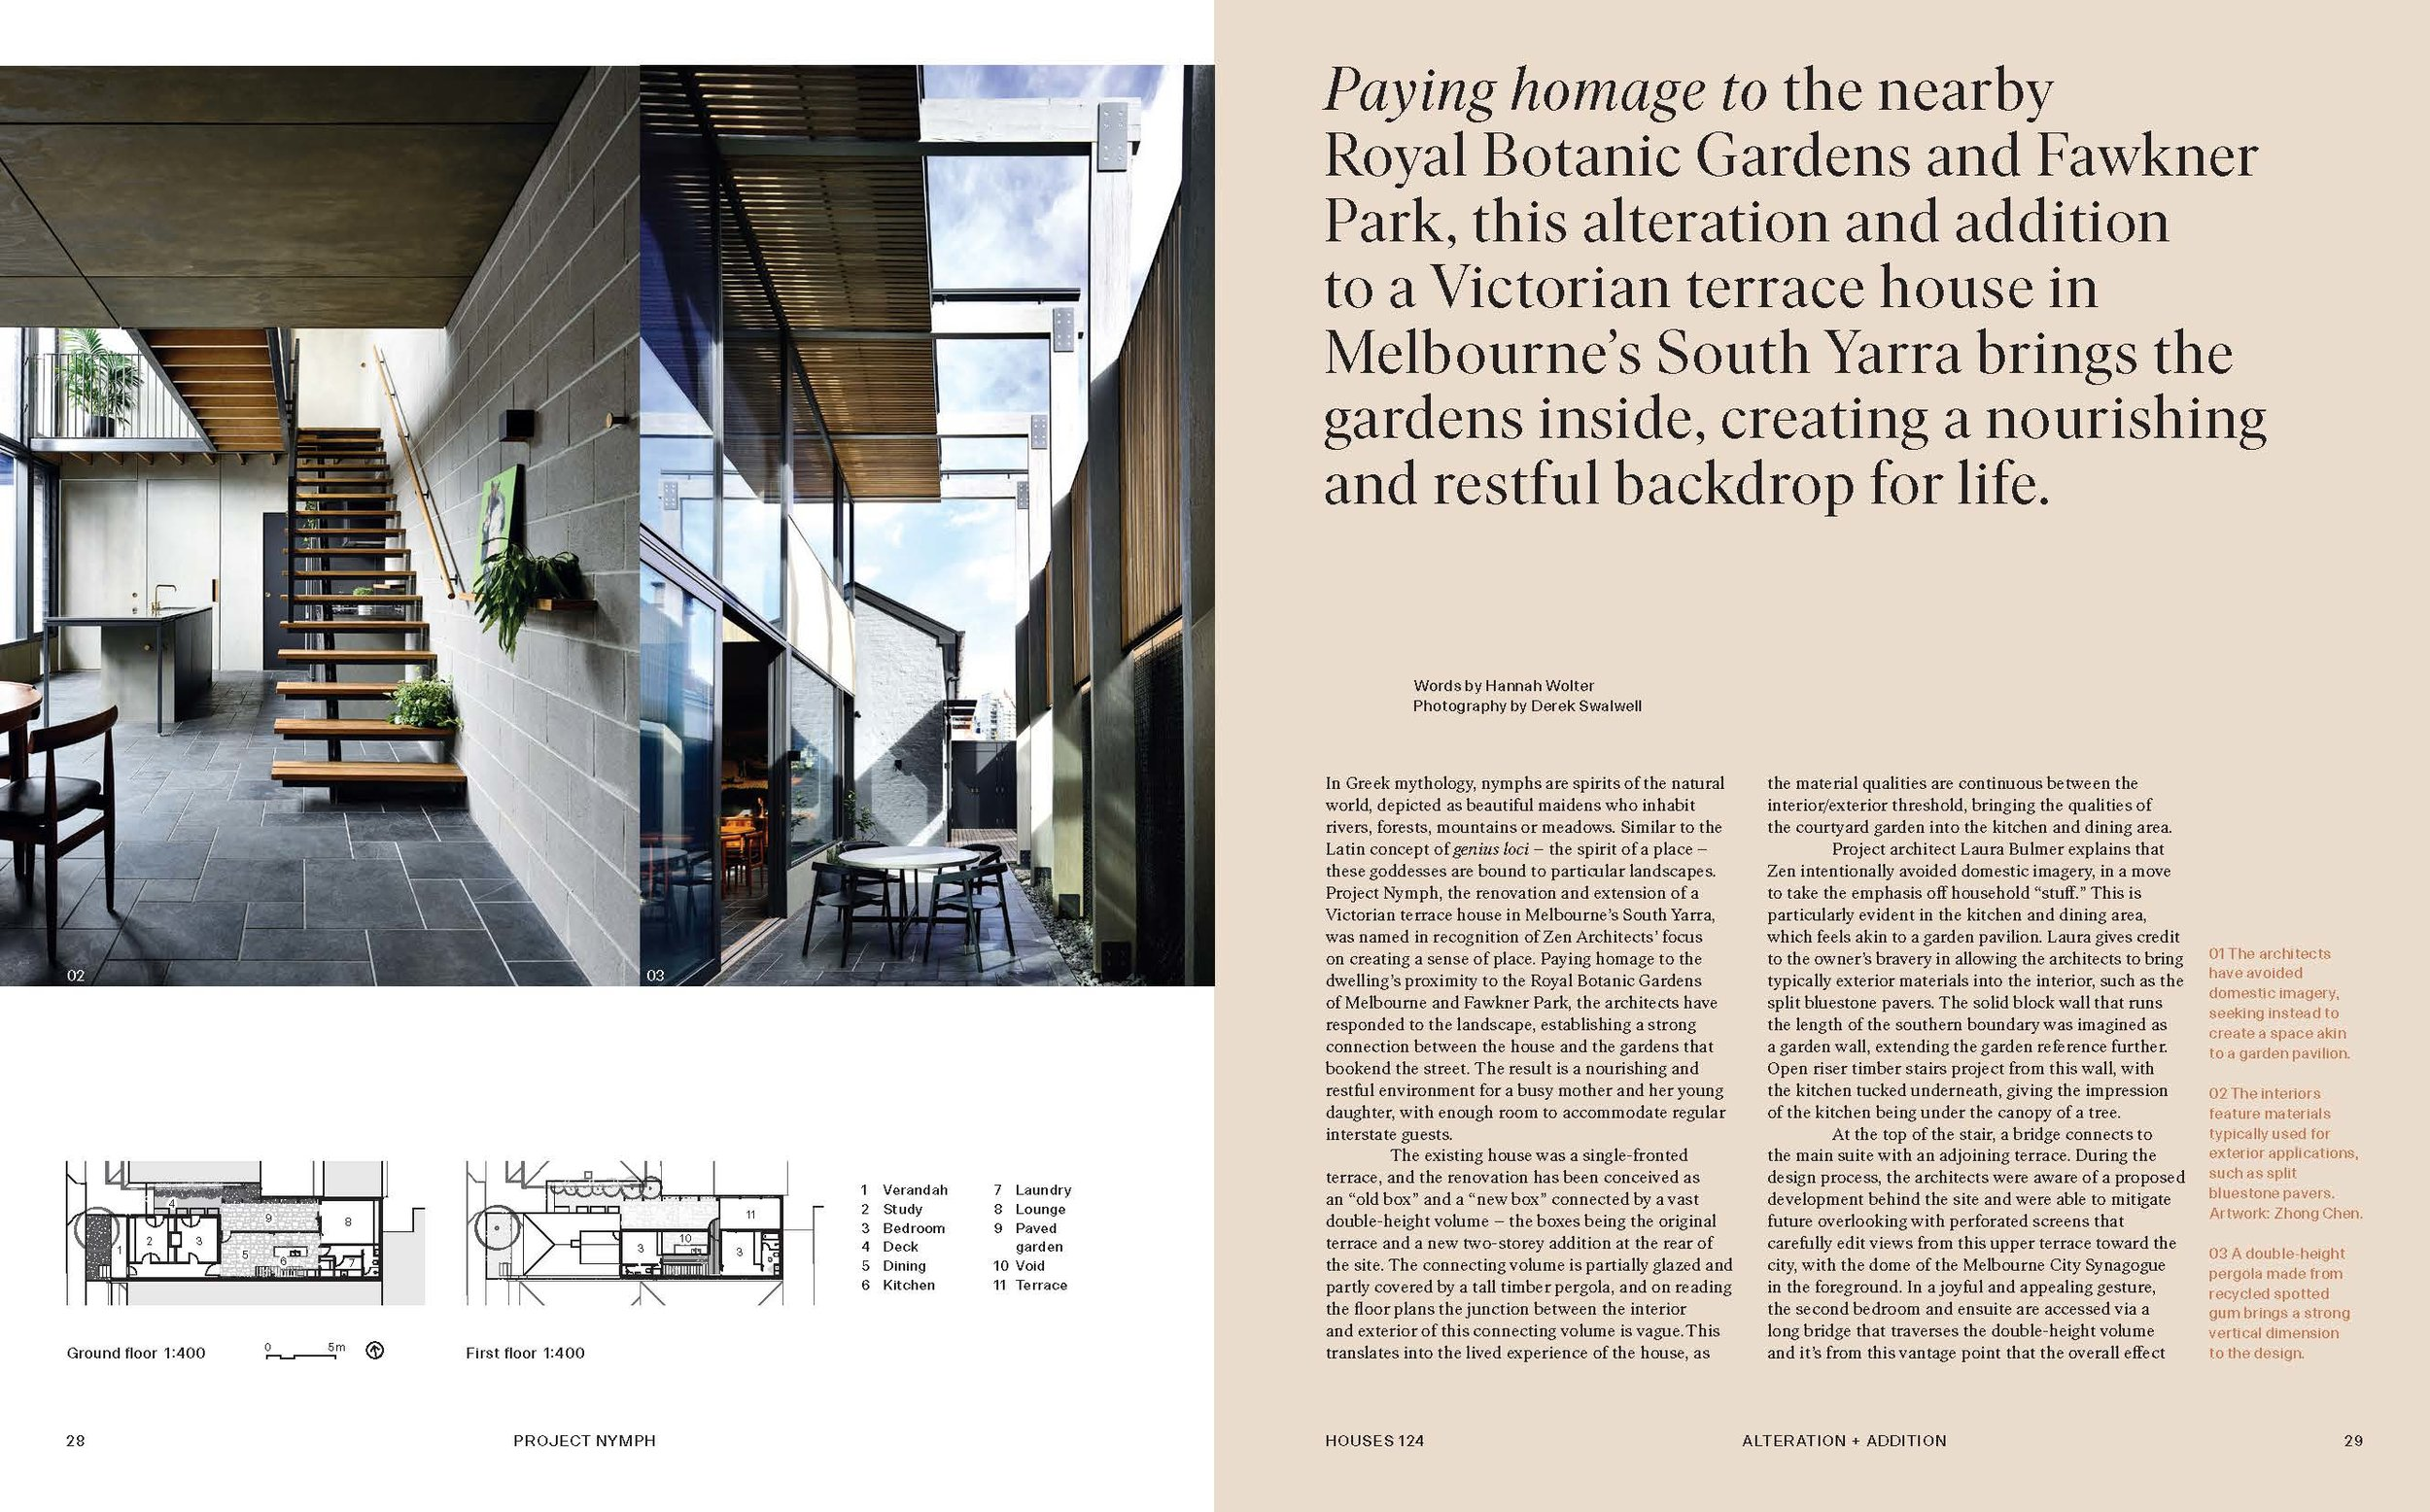 2018_Houses Magazine_Project Nymph_Part3.jpg